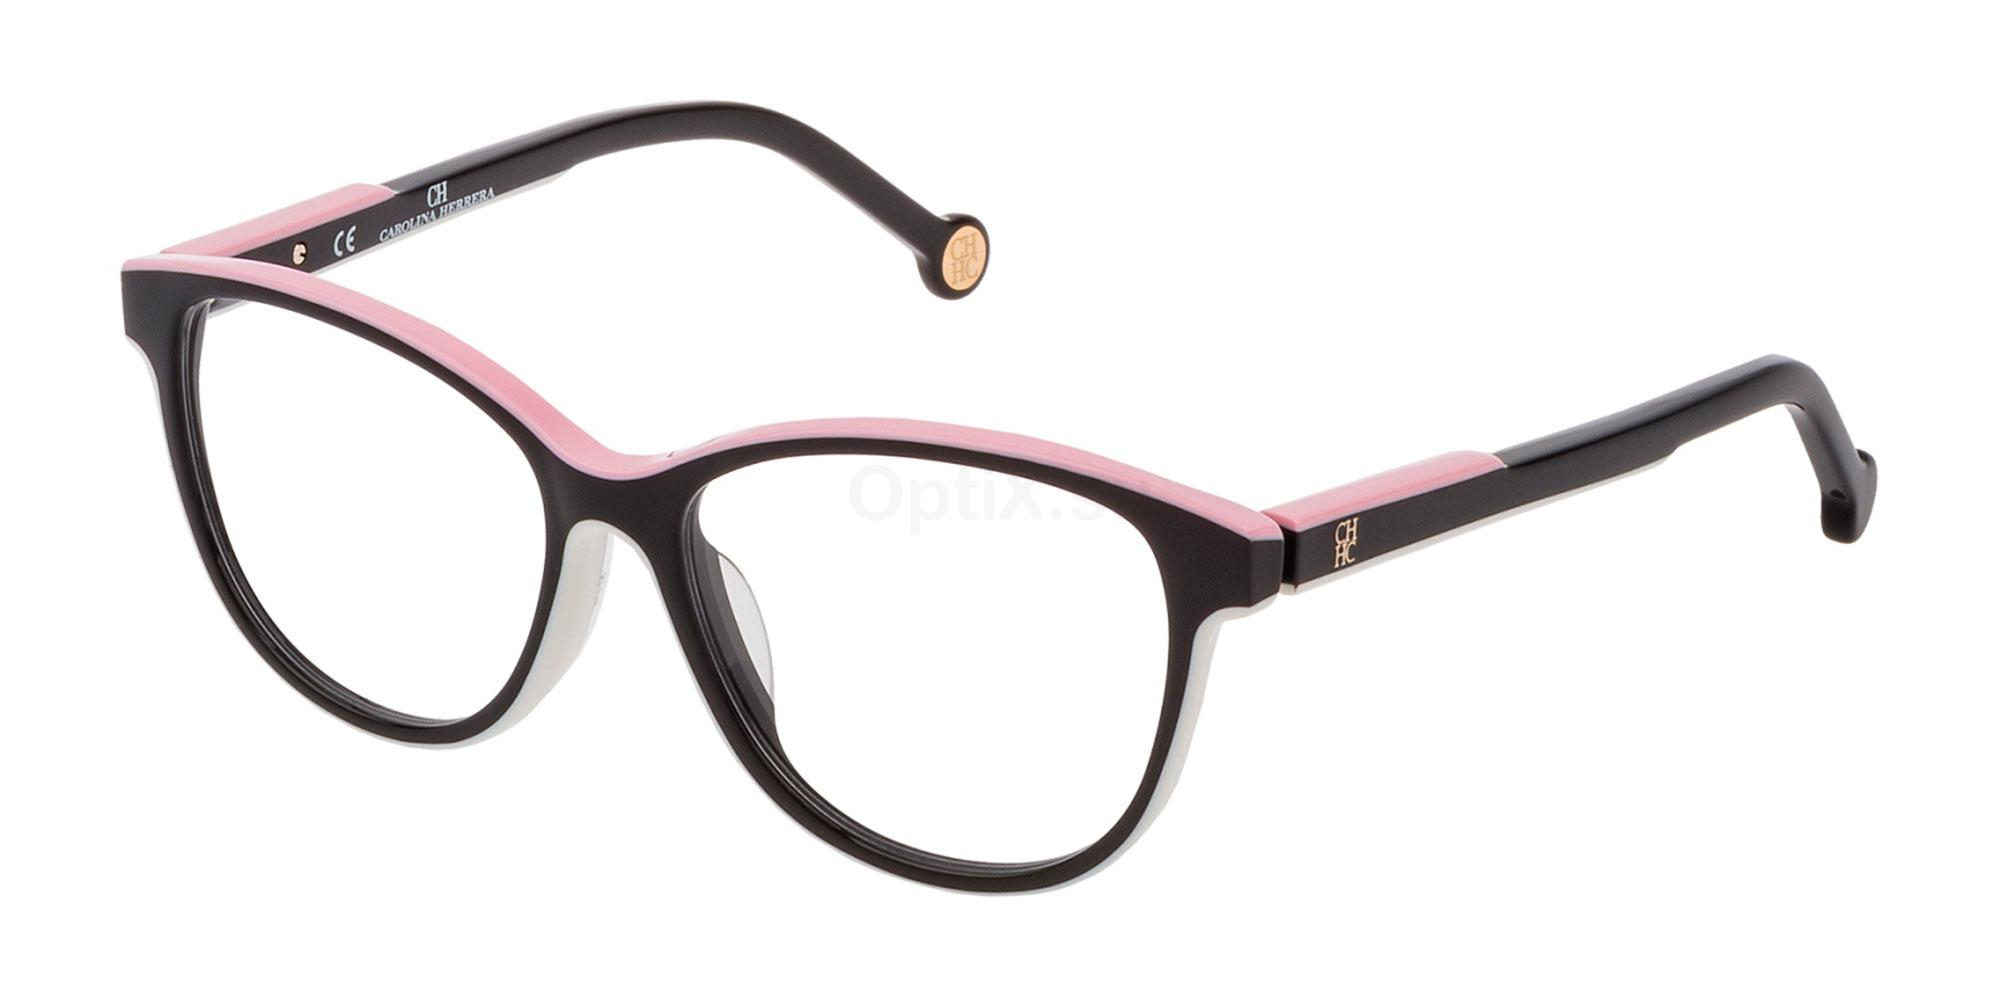 06HC VHE800 Glasses, CH Carolina Herrera